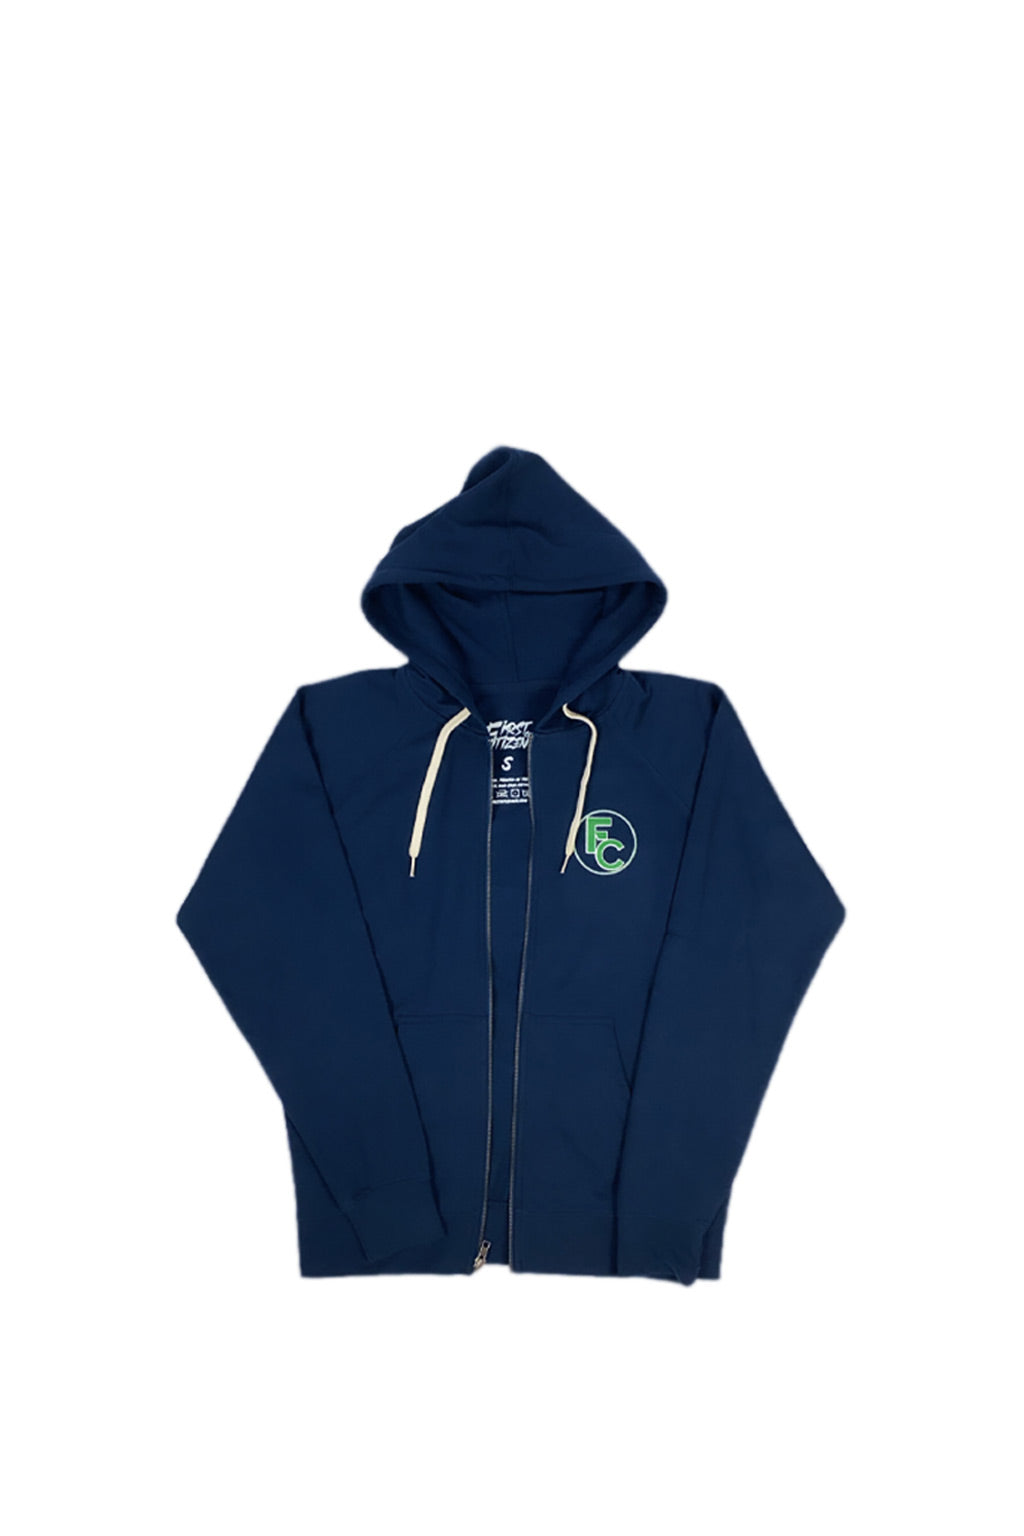 Racing Club Zip-Up Hoodie